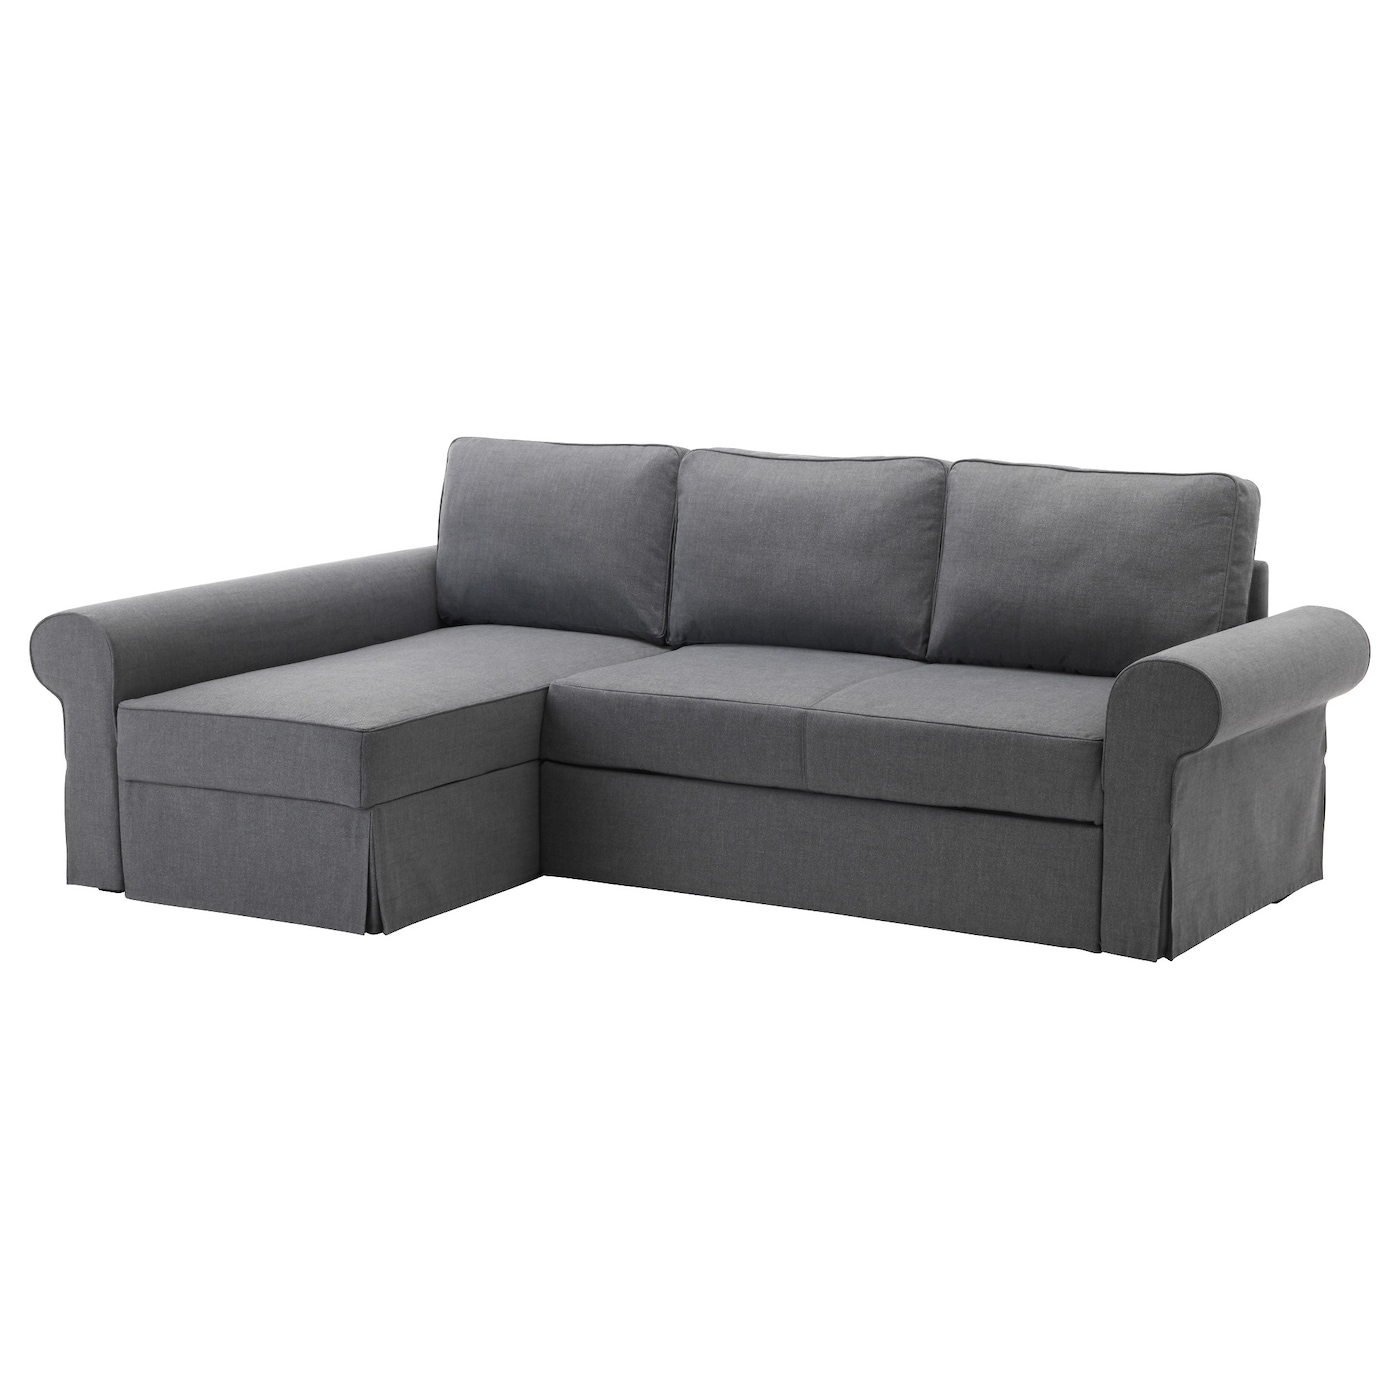 Backabro sofa bed with chaise longue nordvalla dark grey ikea - Sofa cama chaise longue ...